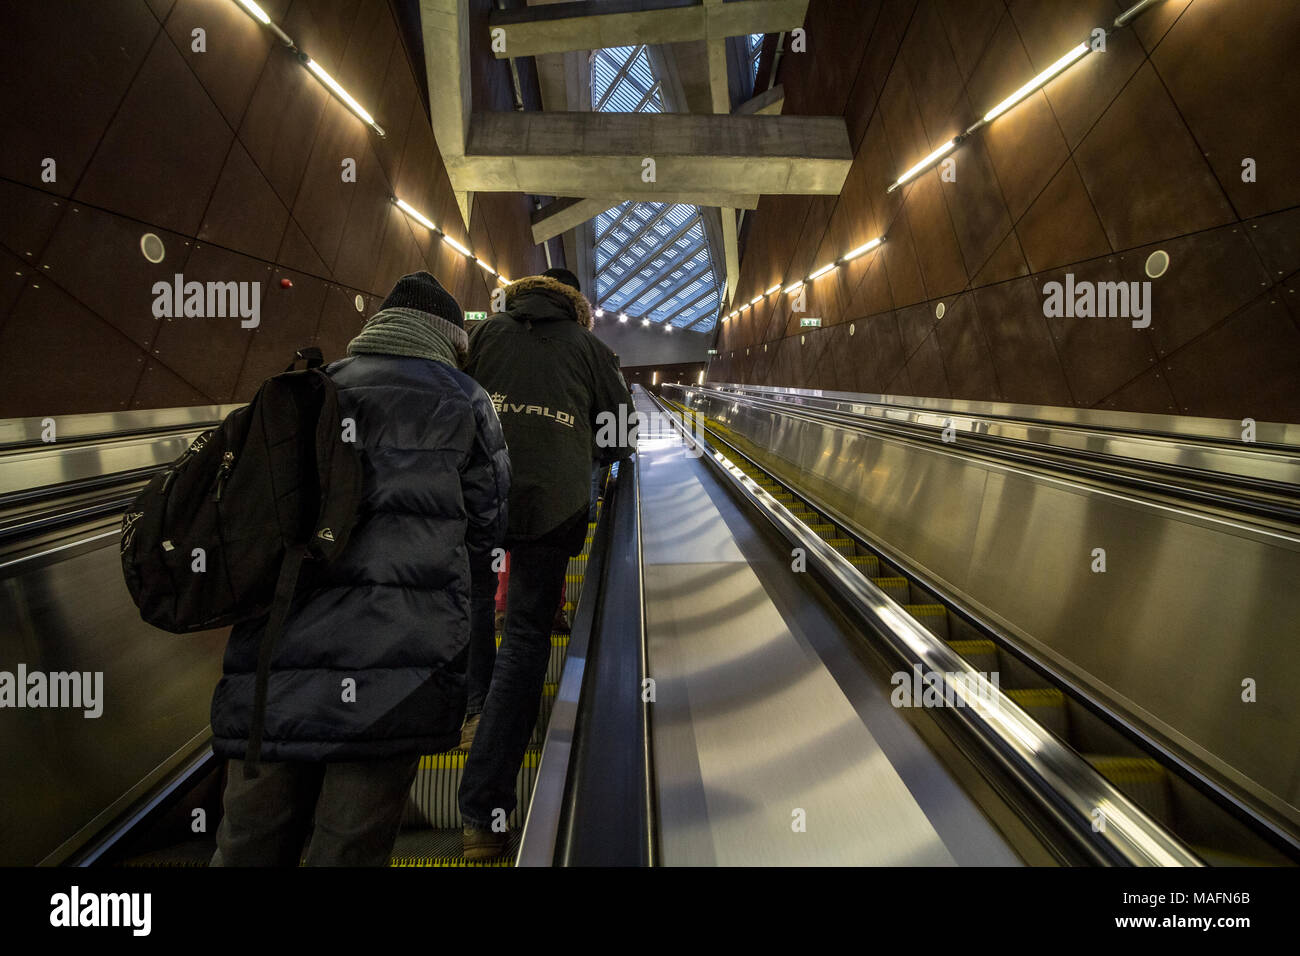 BUDAPEST, HUNGARY - DECEMBER 18, 2016: People going up a metro station of Budapest on an escalator on line 4, the most modern one of Budapest public t - Stock Image